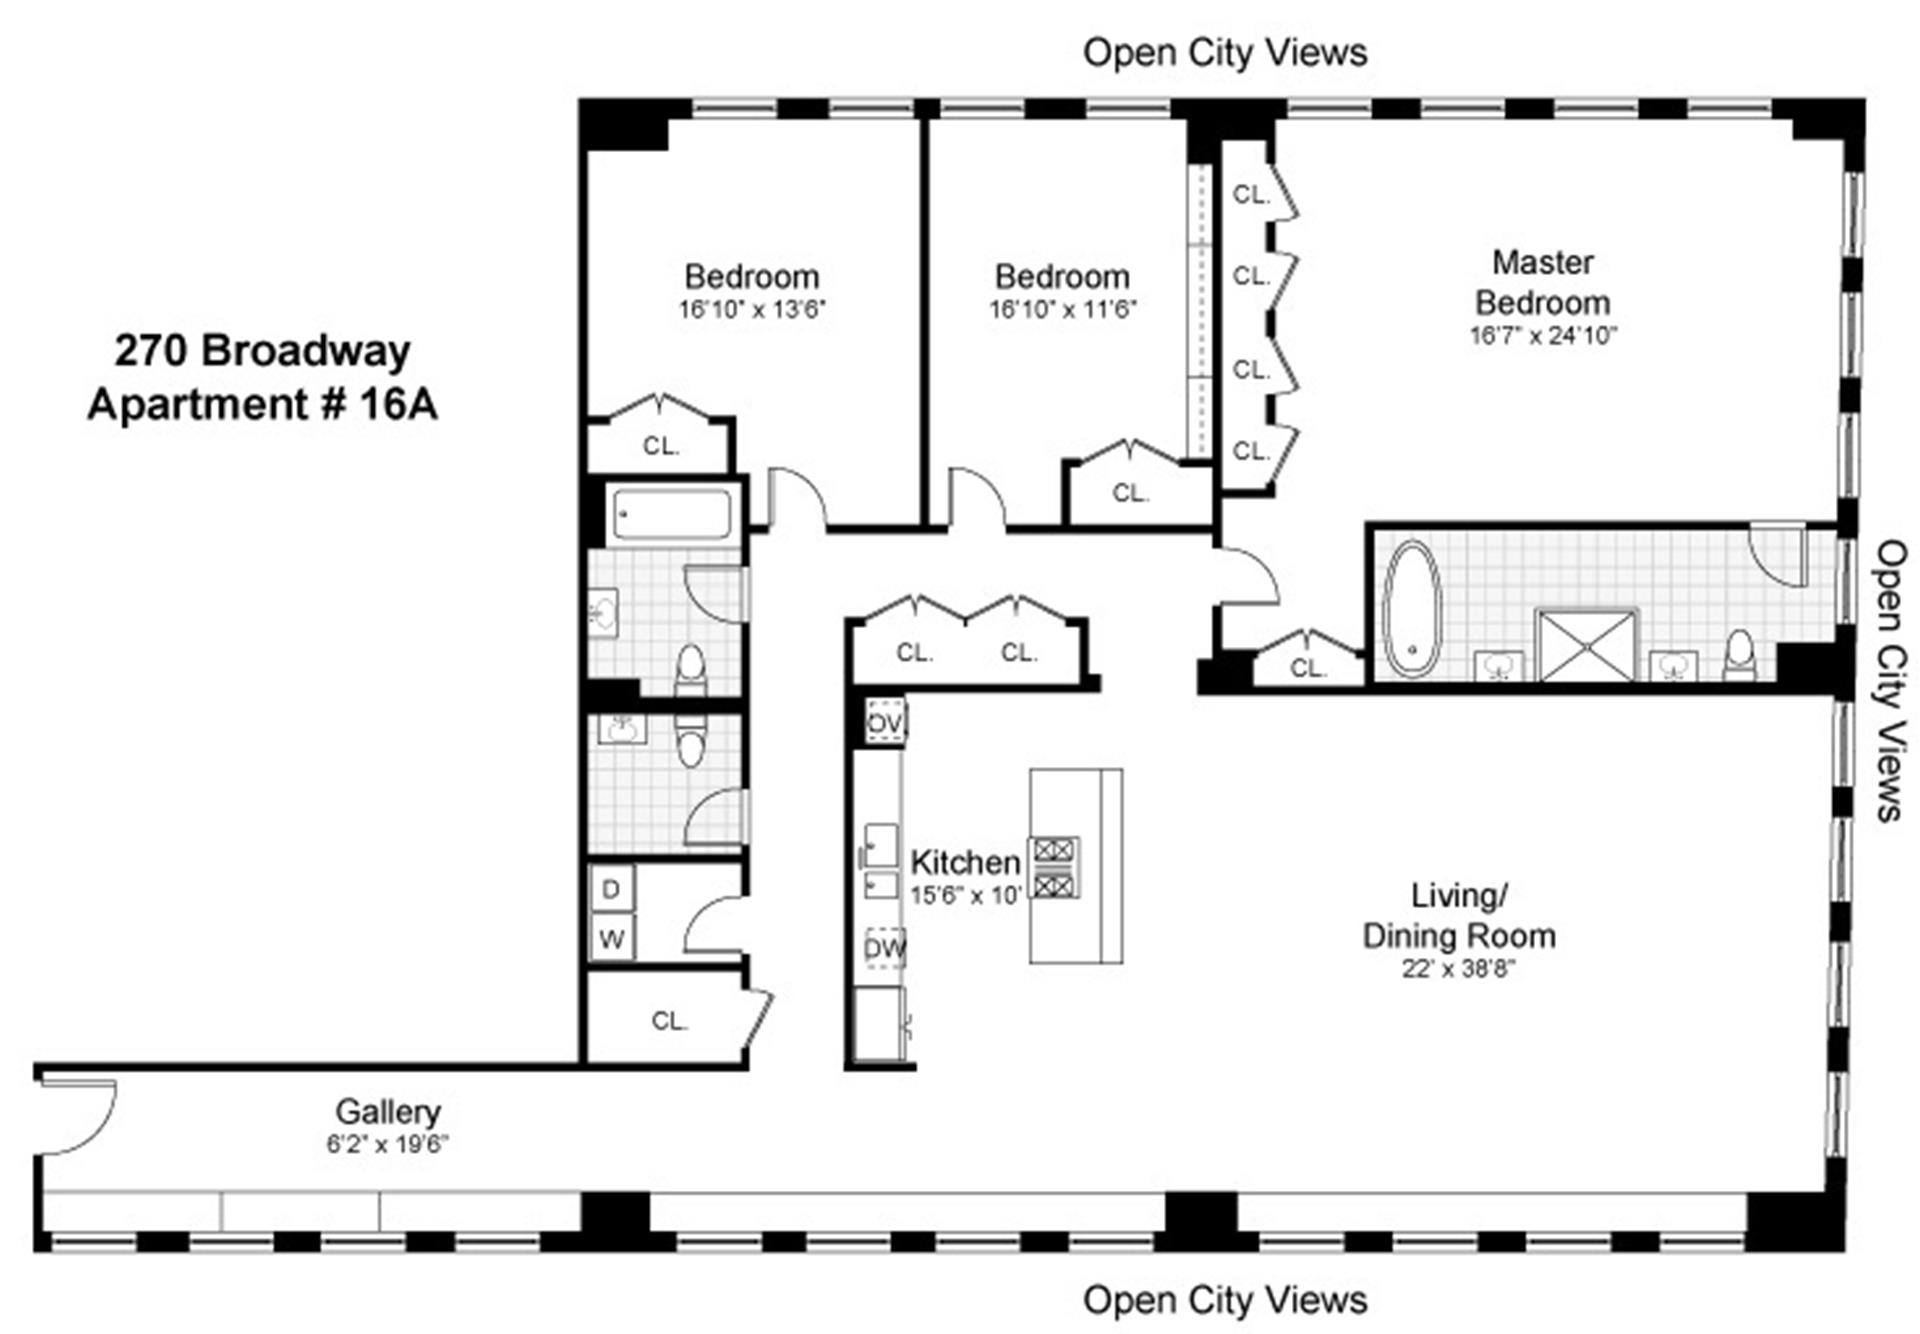 270 broadway new york ny 10007 apartable for 11 east broadway 13th floor new york ny 10038